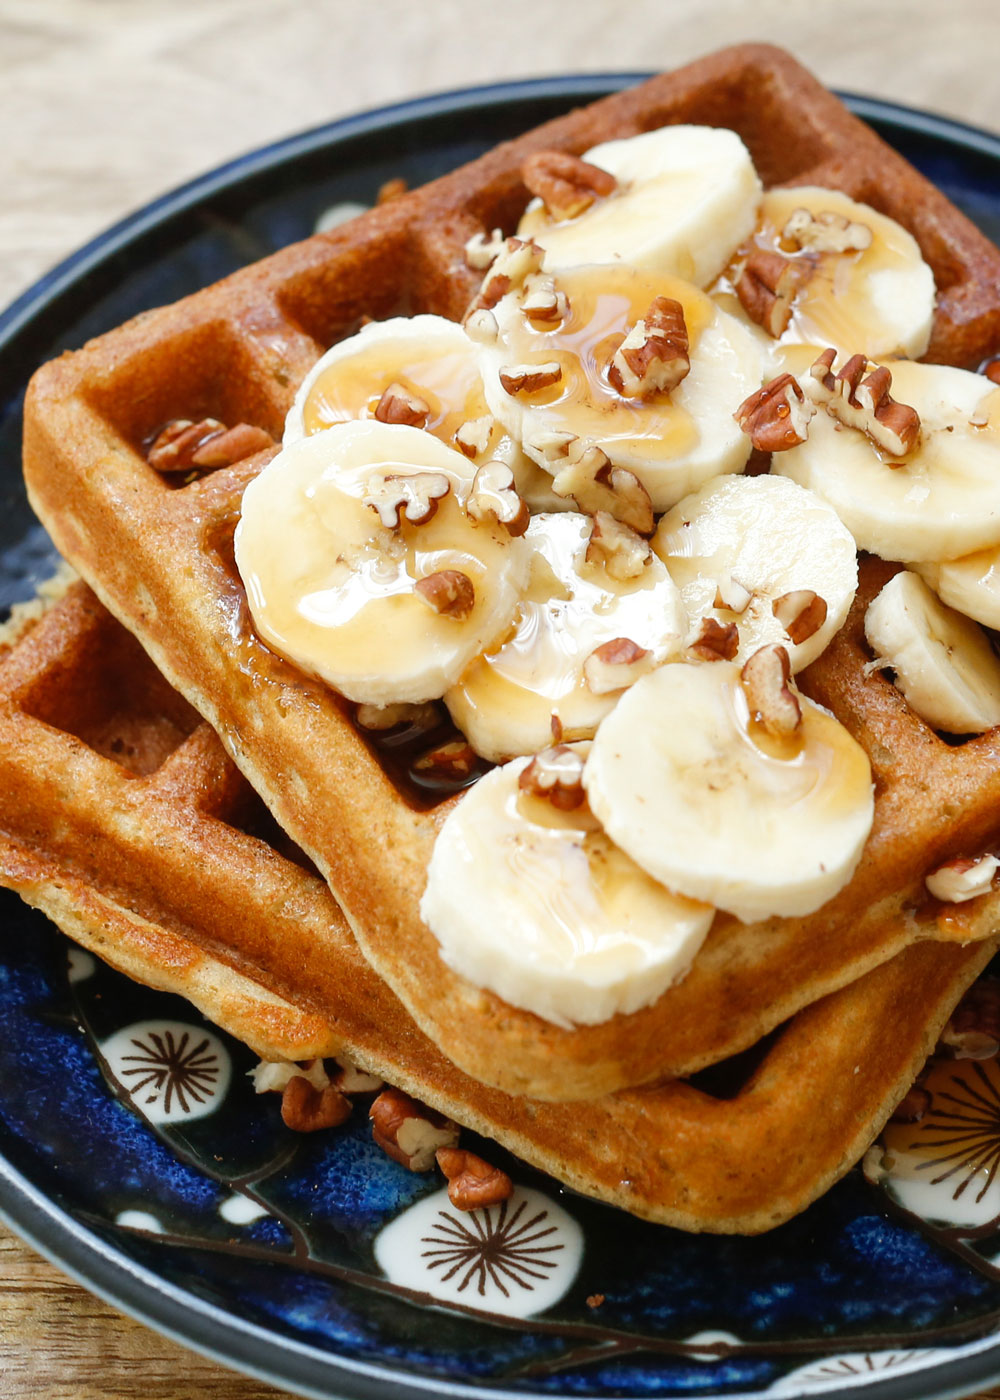 Banana Waffles are crisp, light, and fluffy! (traditional and gluten free recipes included) - by barefeetinthekitchen.com